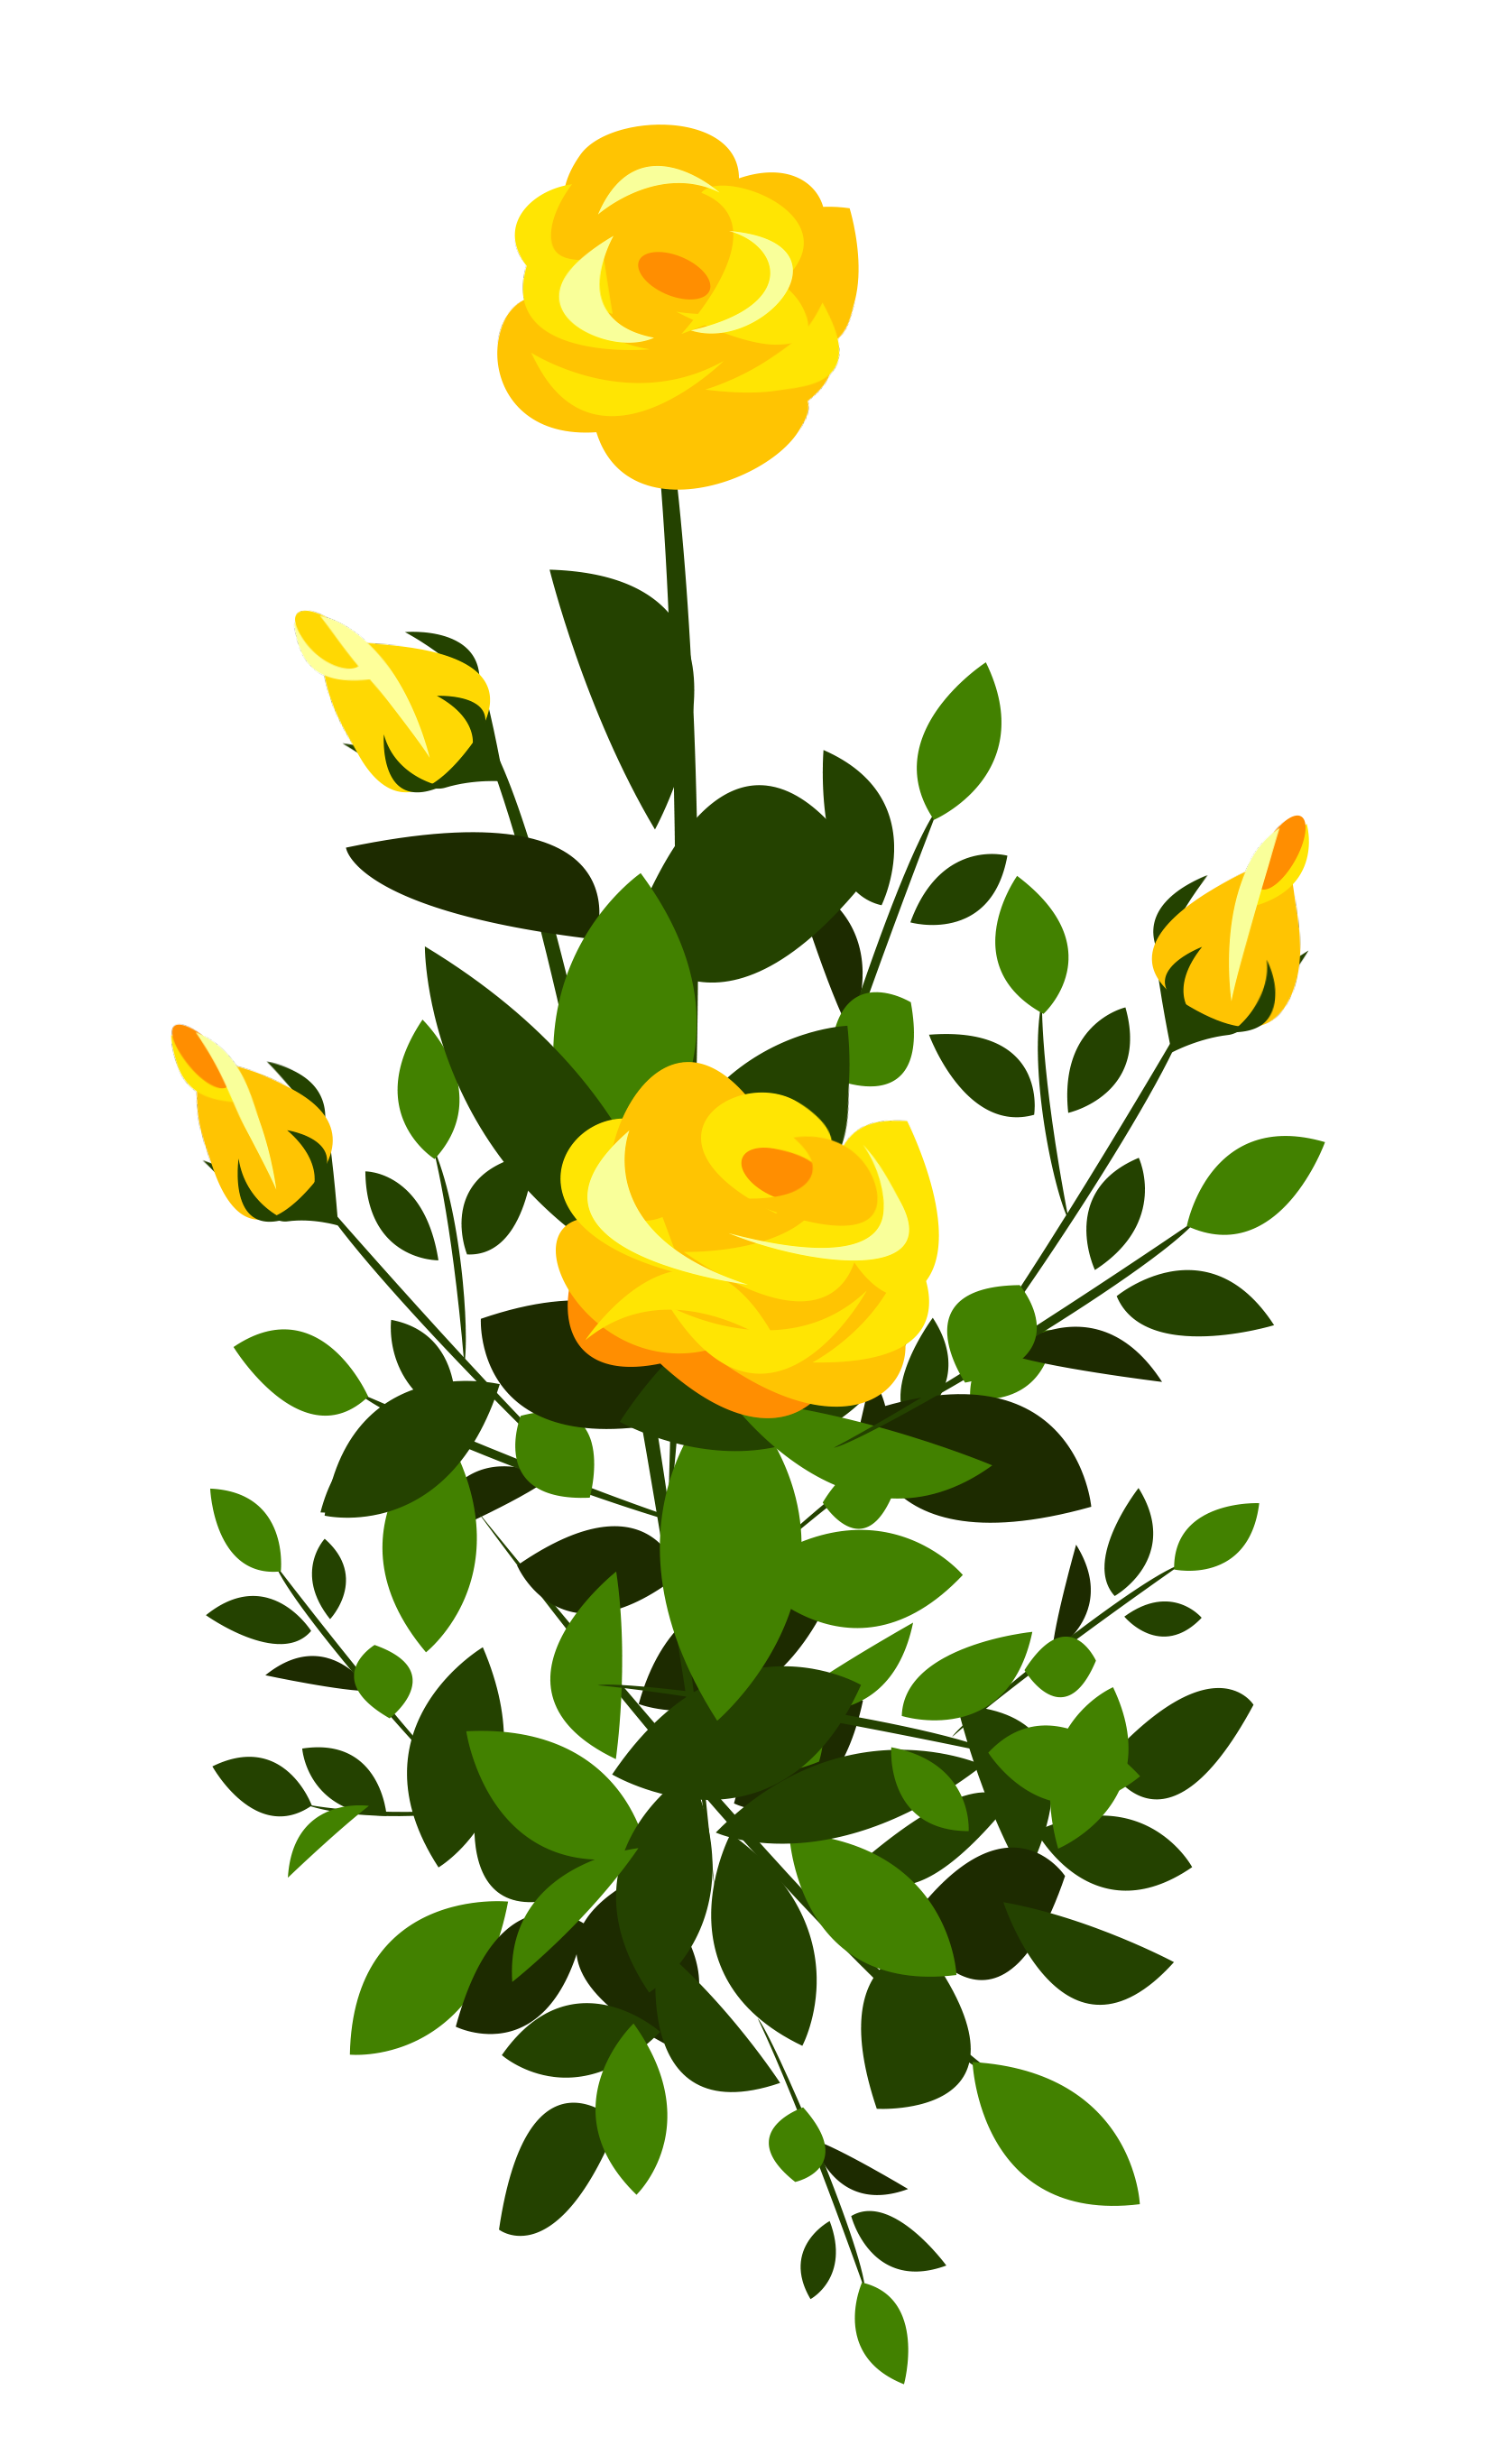 Rose clipart yellow rose. Yellw png transparent images